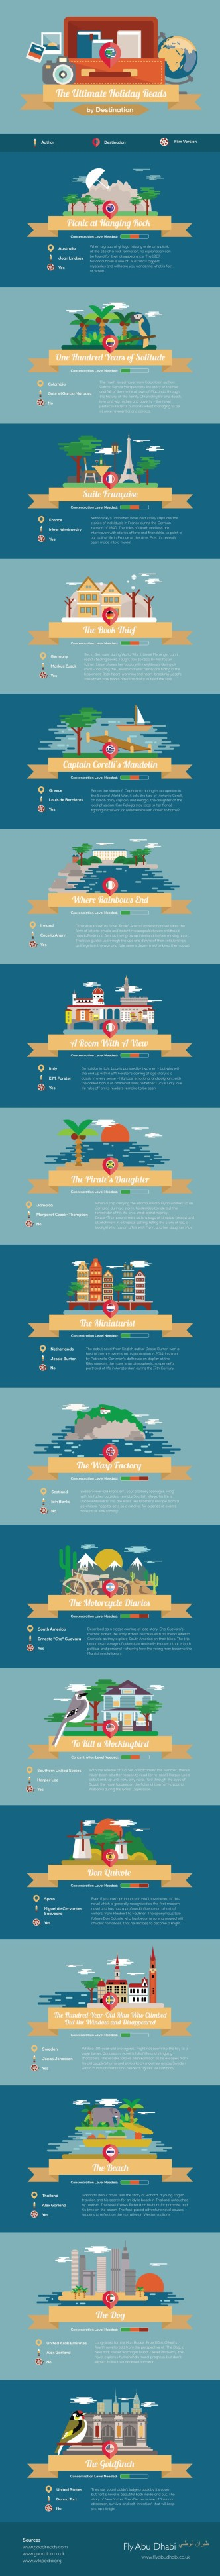 The ultimate holiday reads by their location - infographic